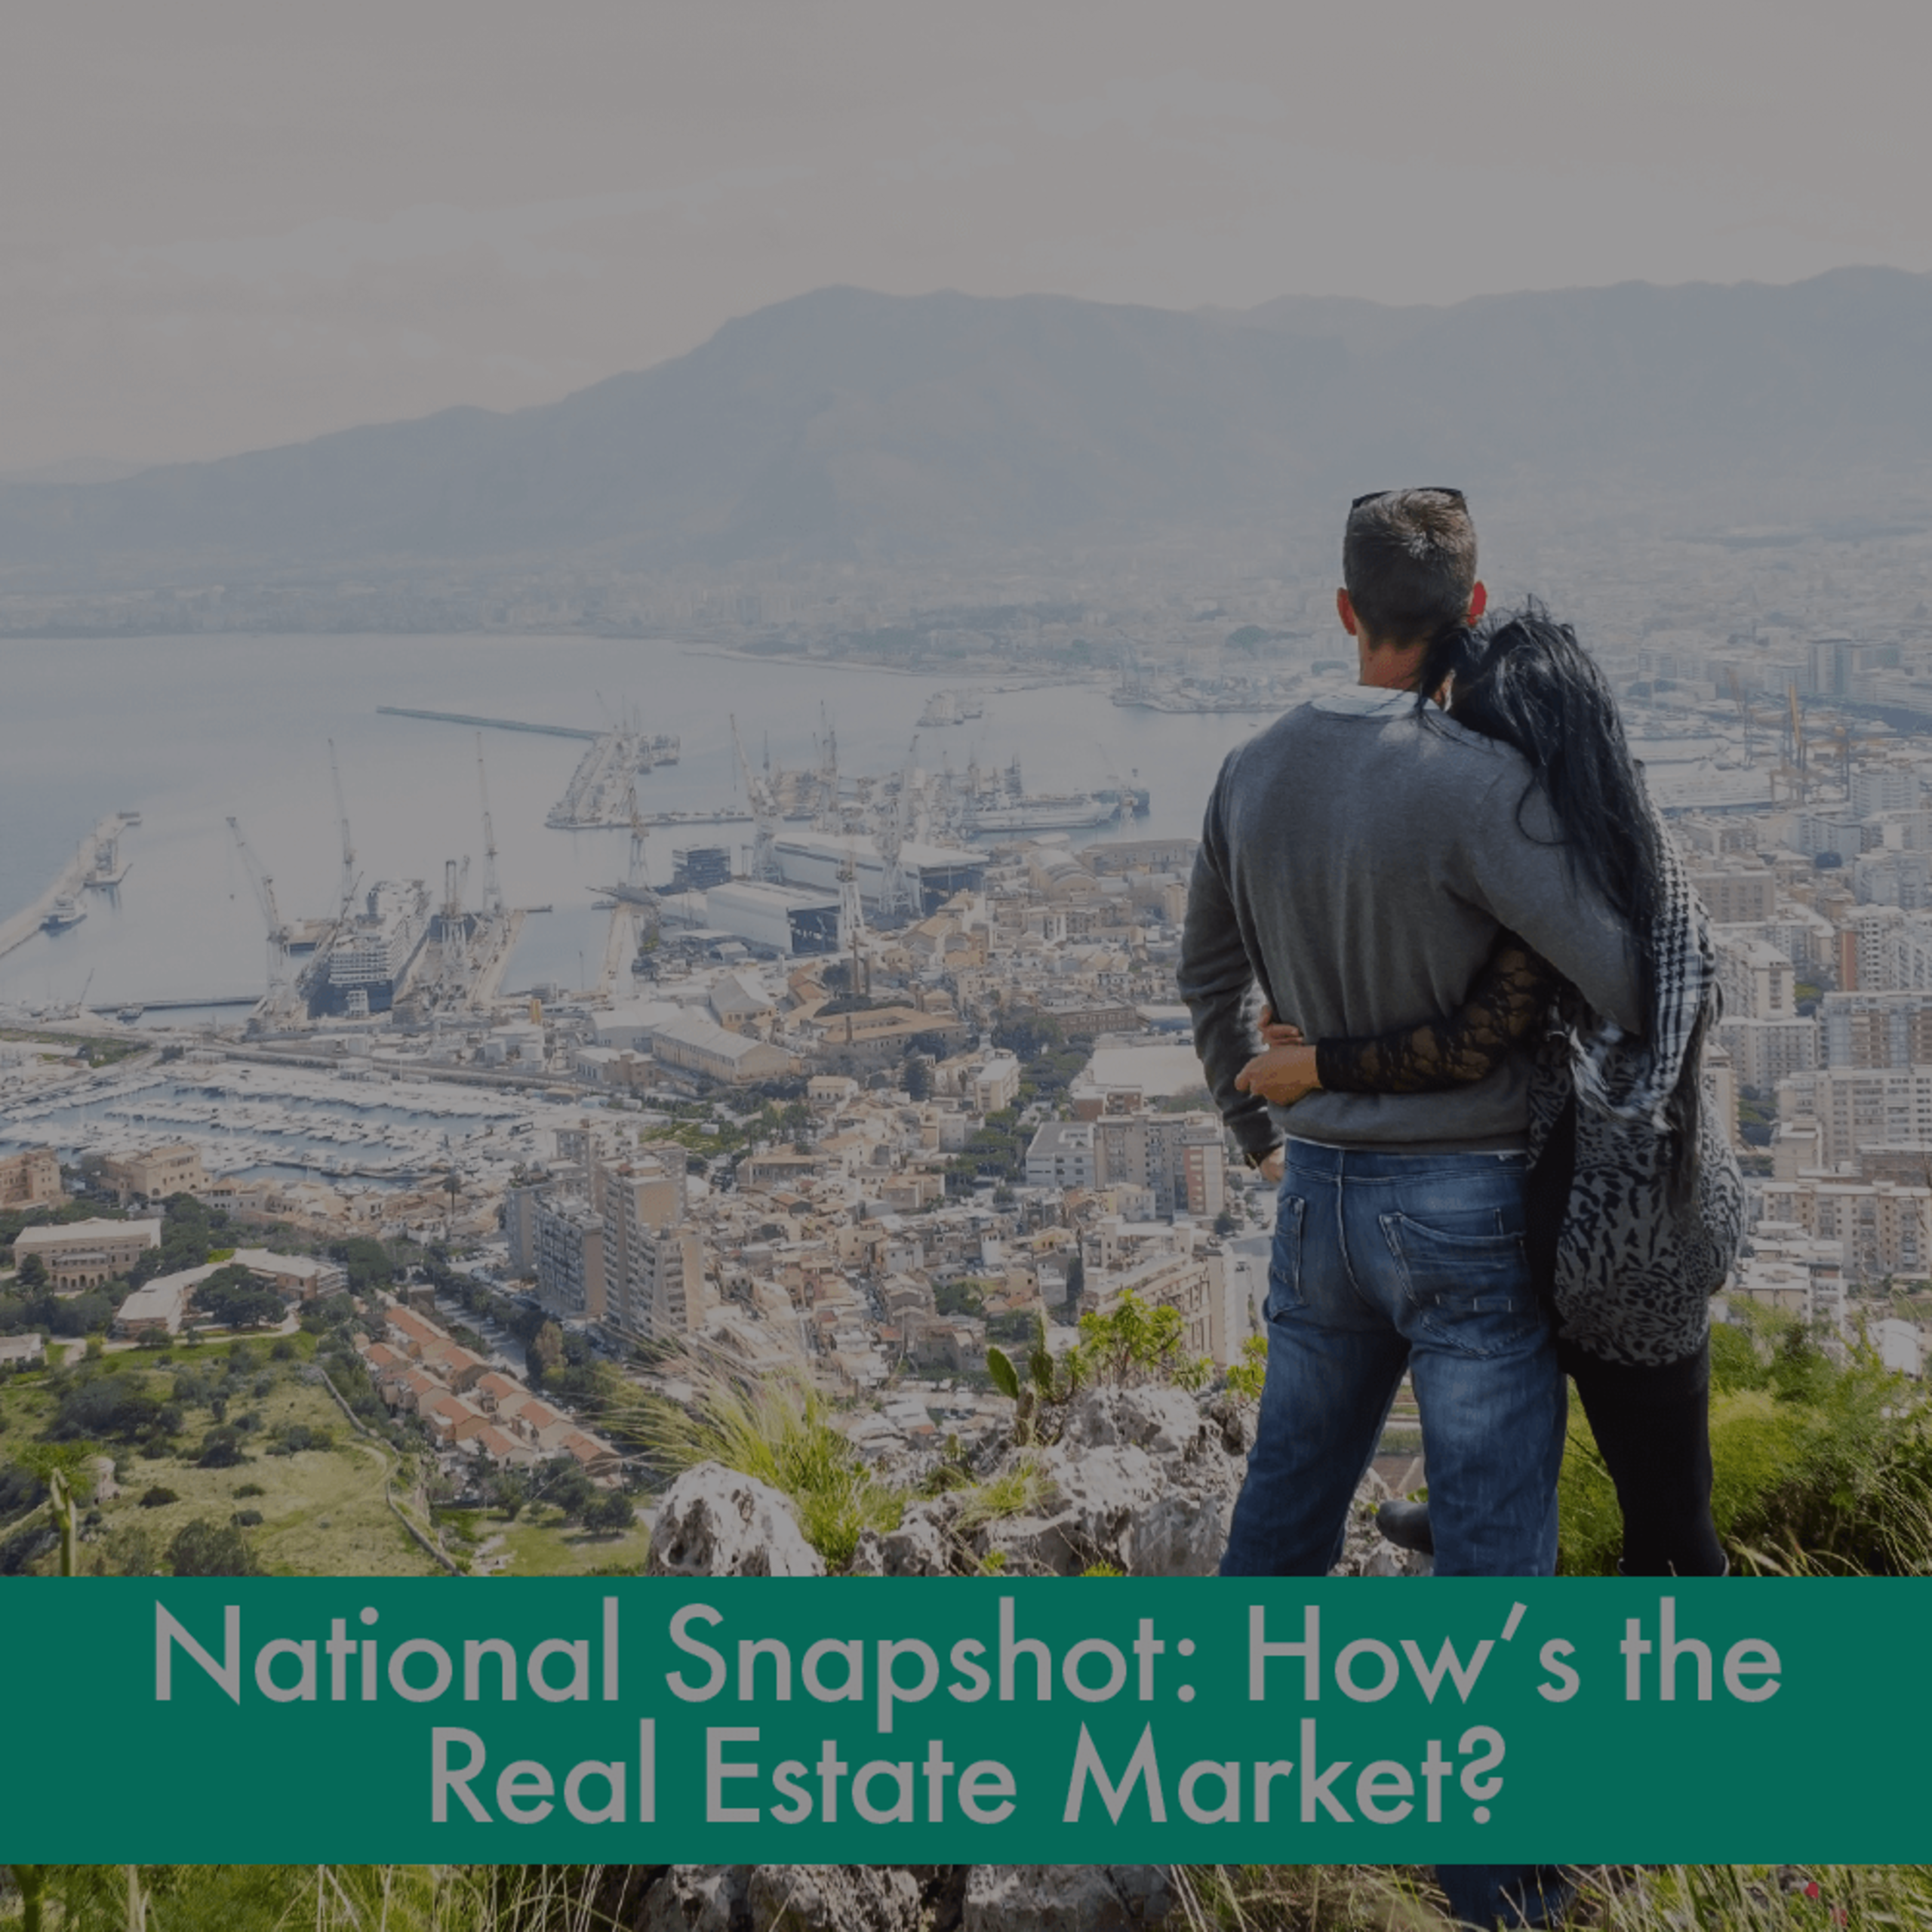 National Snapshot: What's Ahead for Real Estate